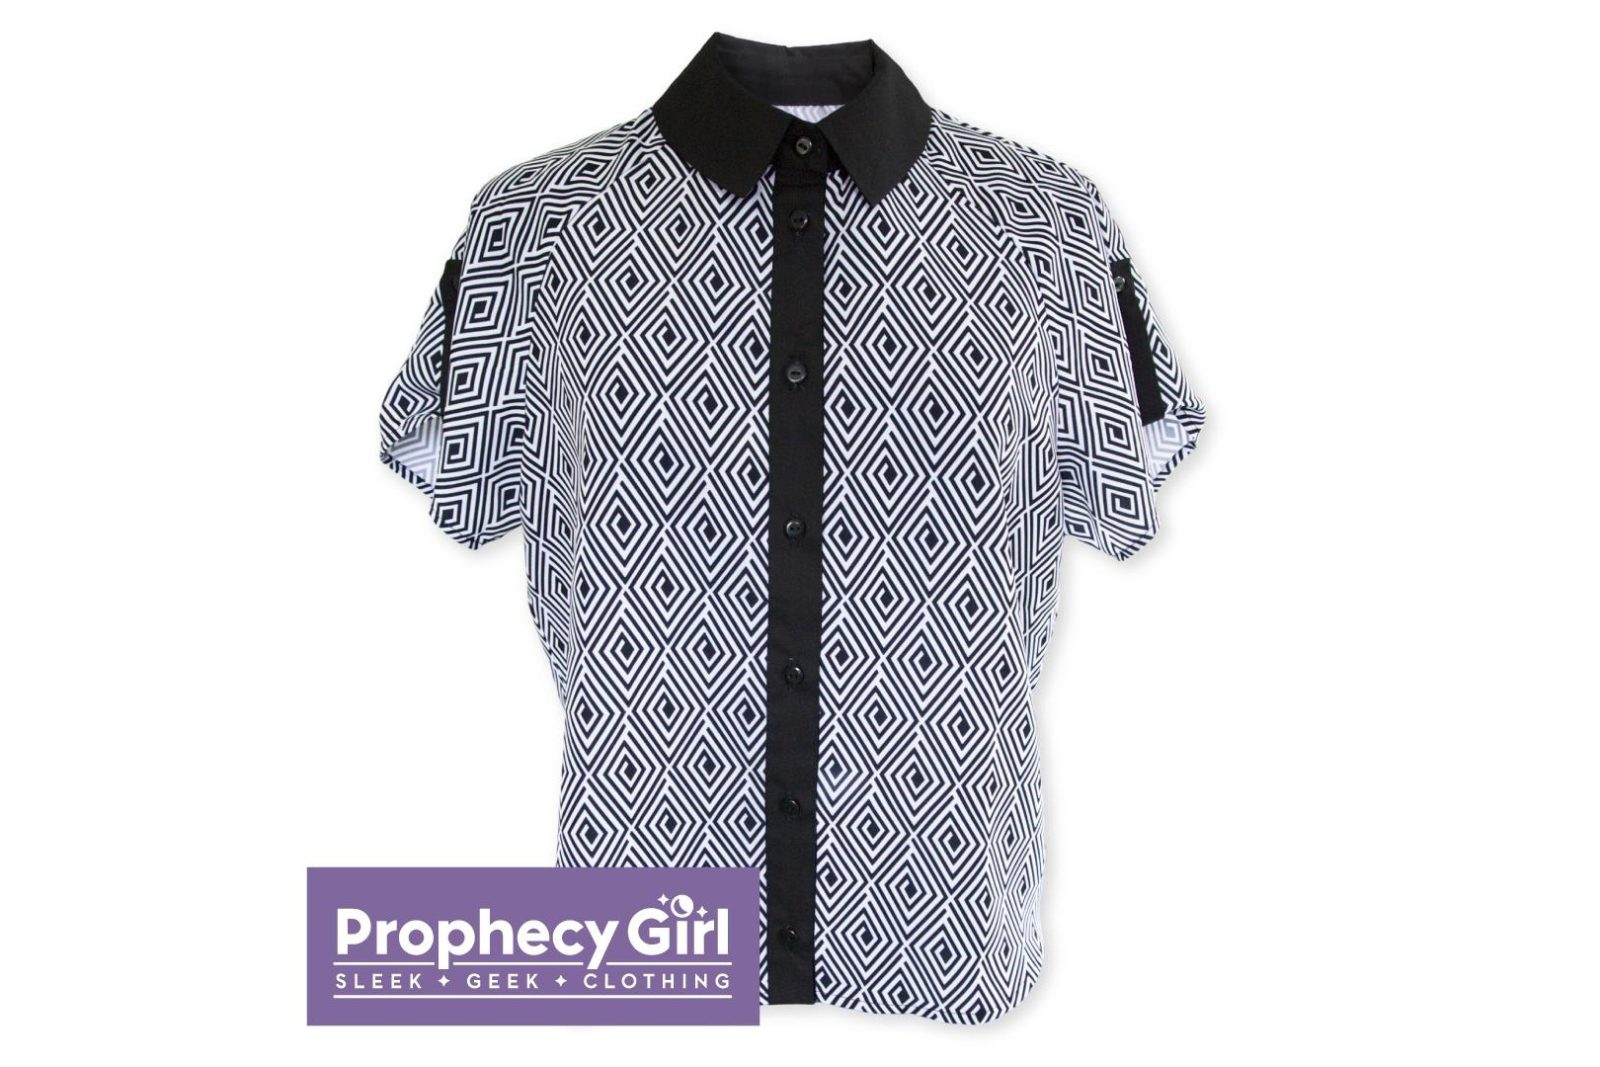 Bazine Netal Inspired Shirt by Prophecy Girl